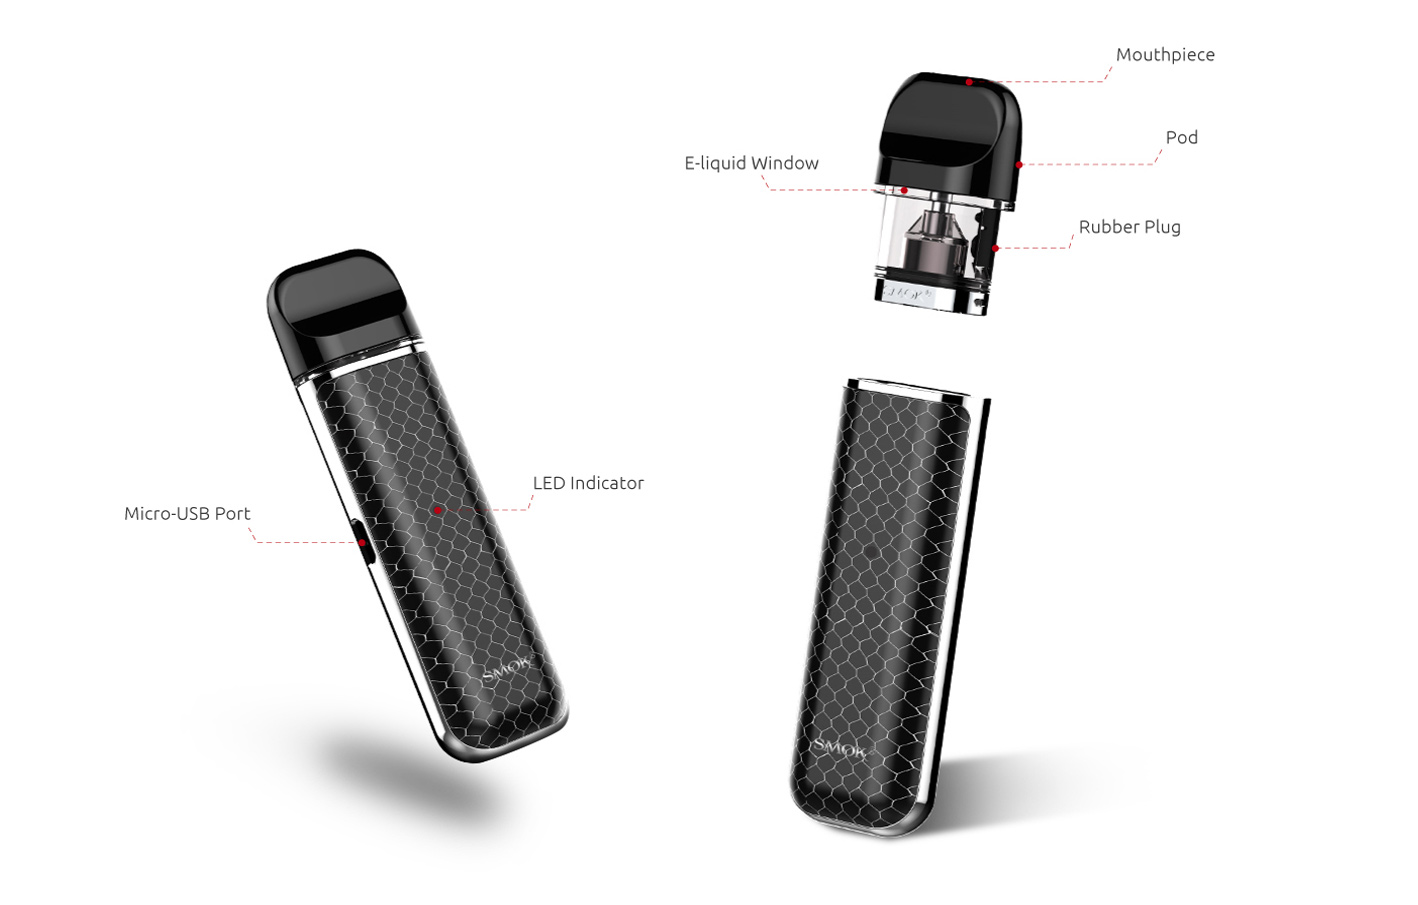 SMOK NOVO 16W Pod Kit - Vape Kits | SMOK® Official